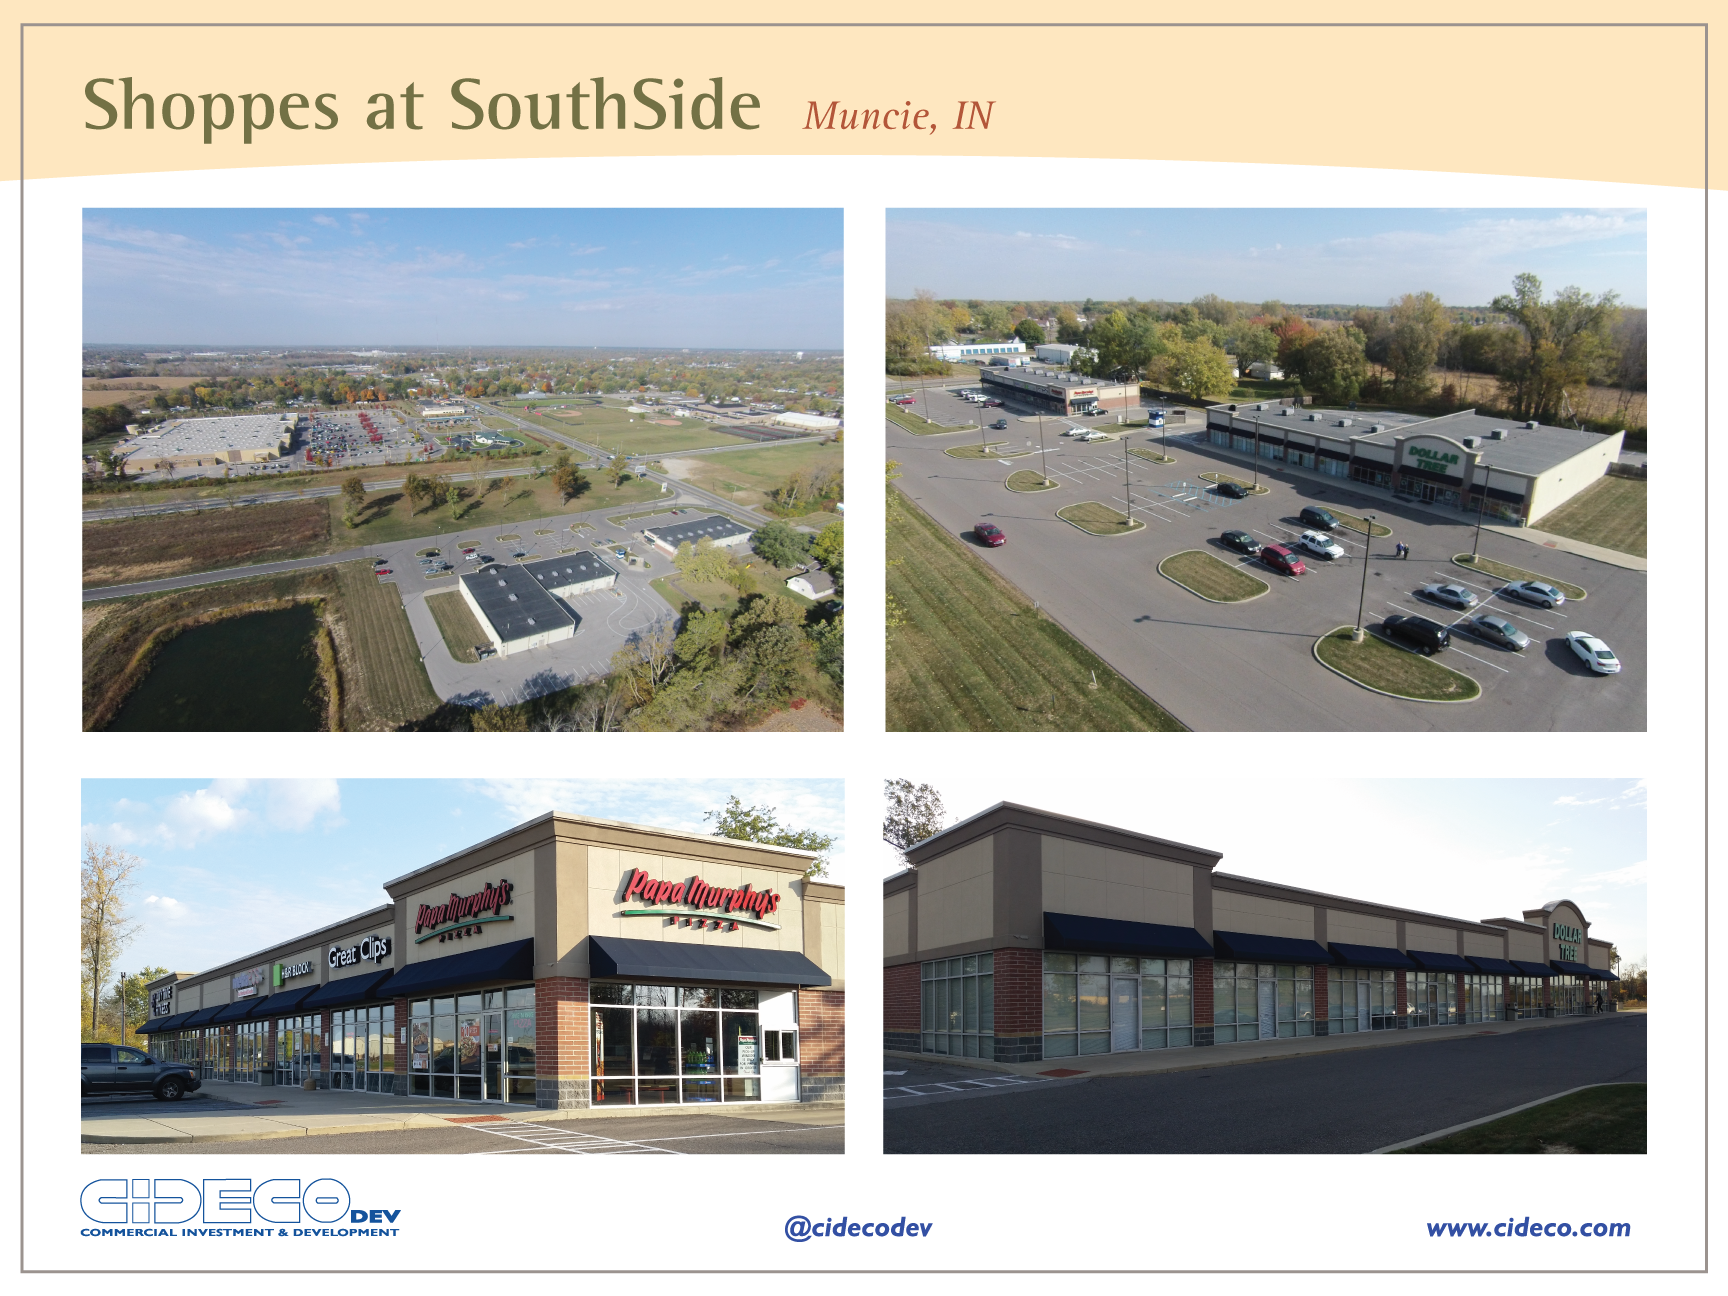 Muncie-Shoppes-at-Southside-Poster